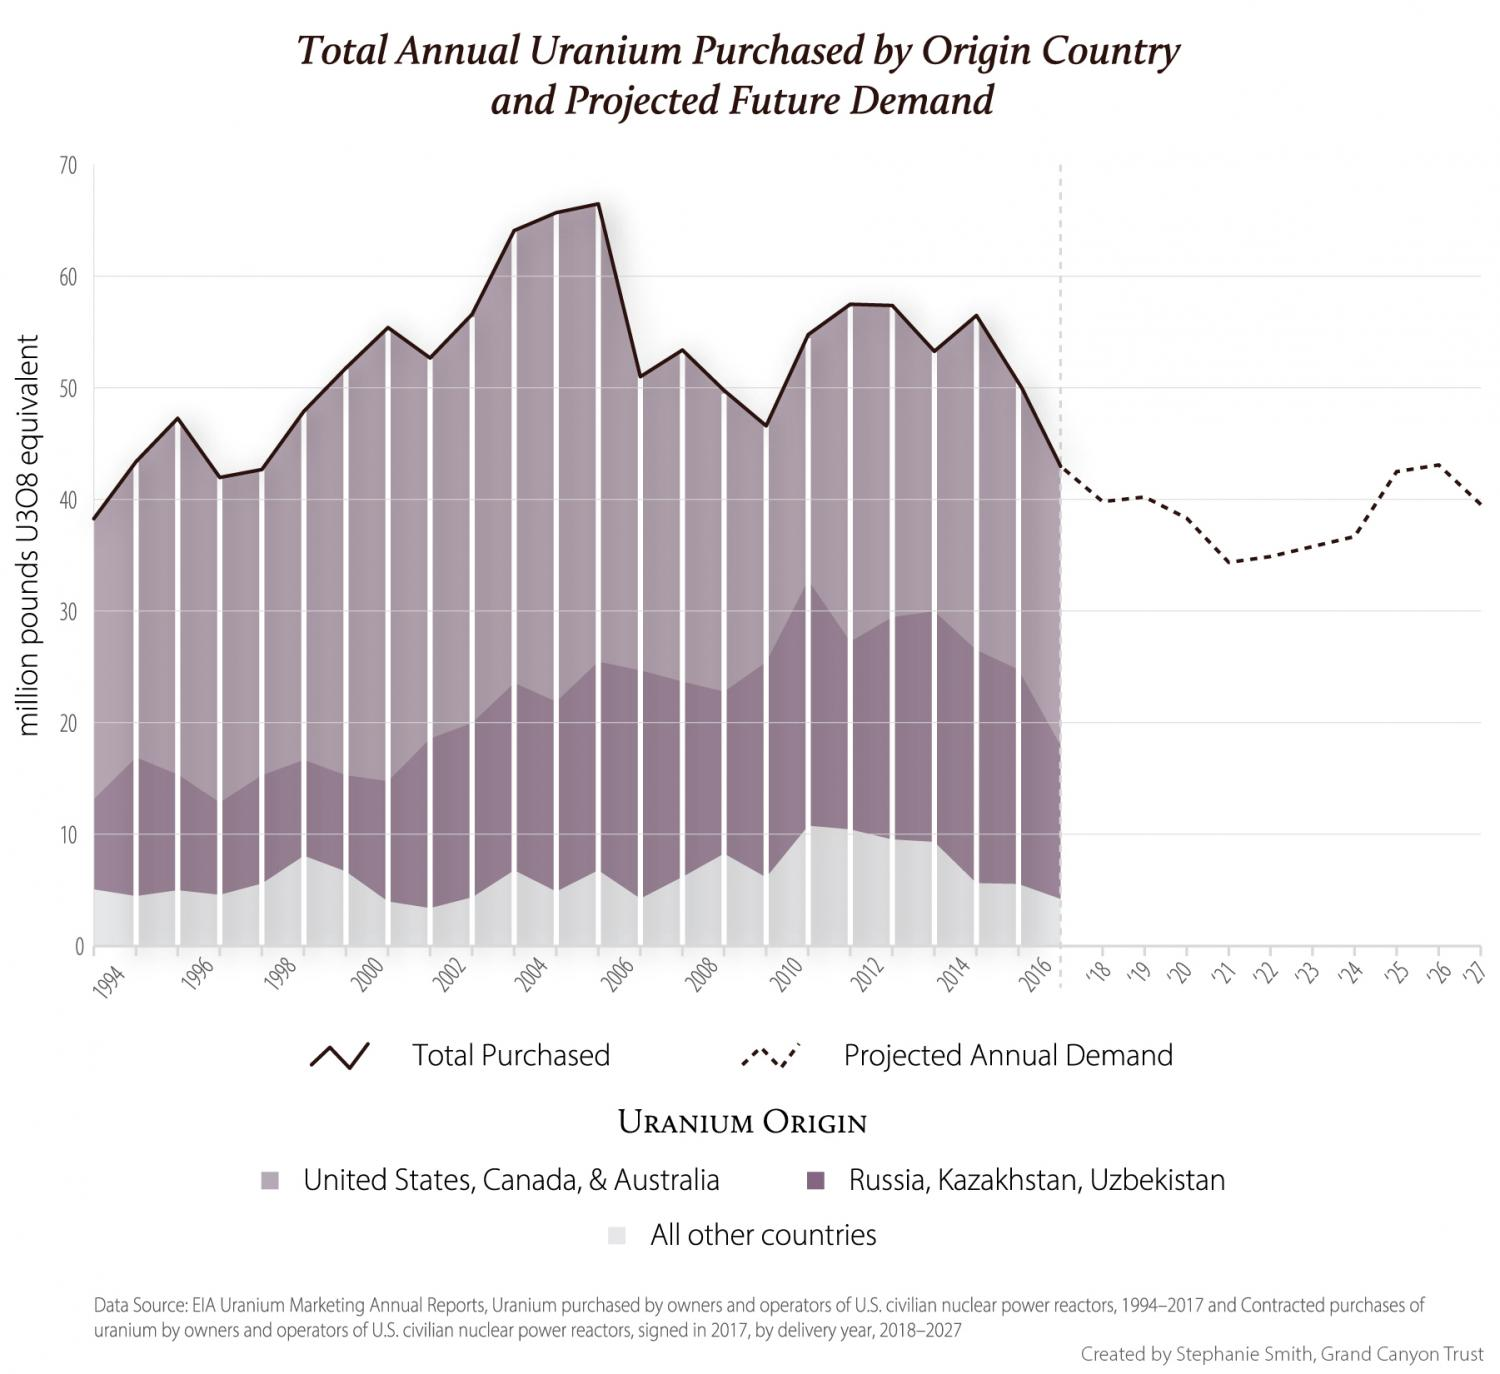 Total Uranium Demand by Origin